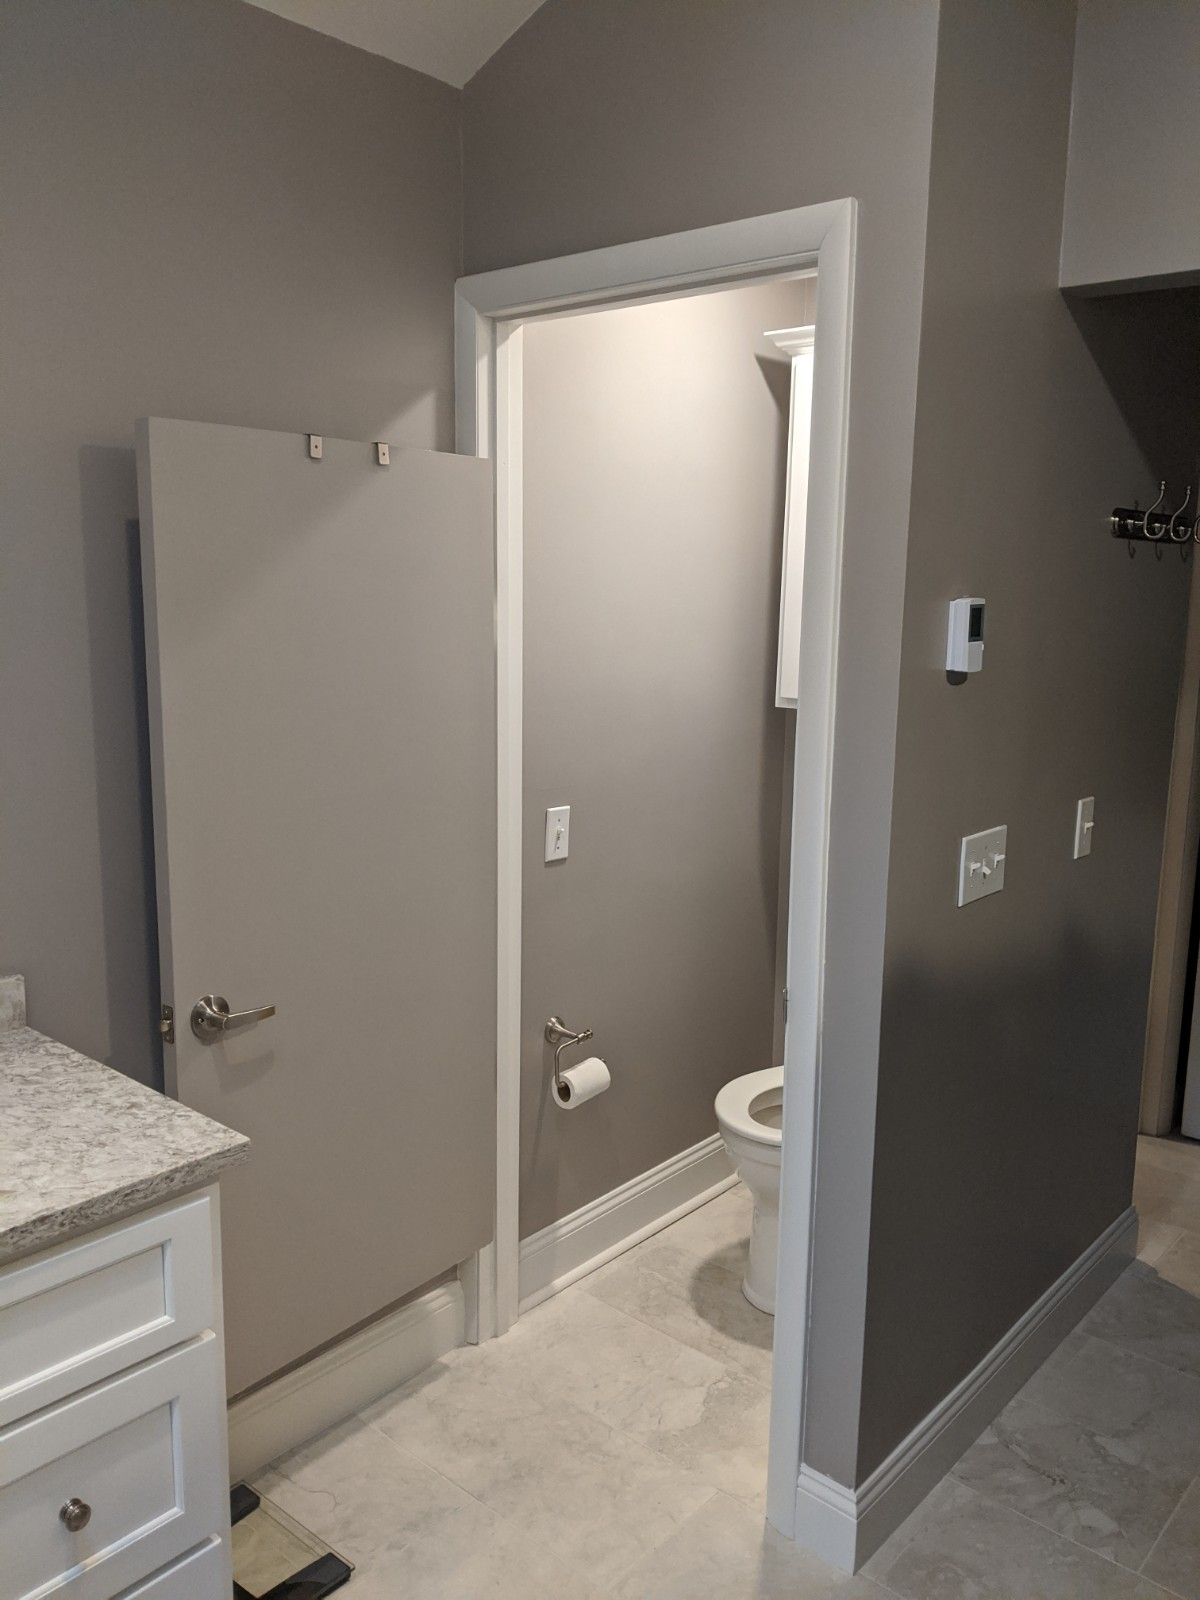 This picture shows the updated tile floor throughout the bathroom as well as the modern door for the water closet